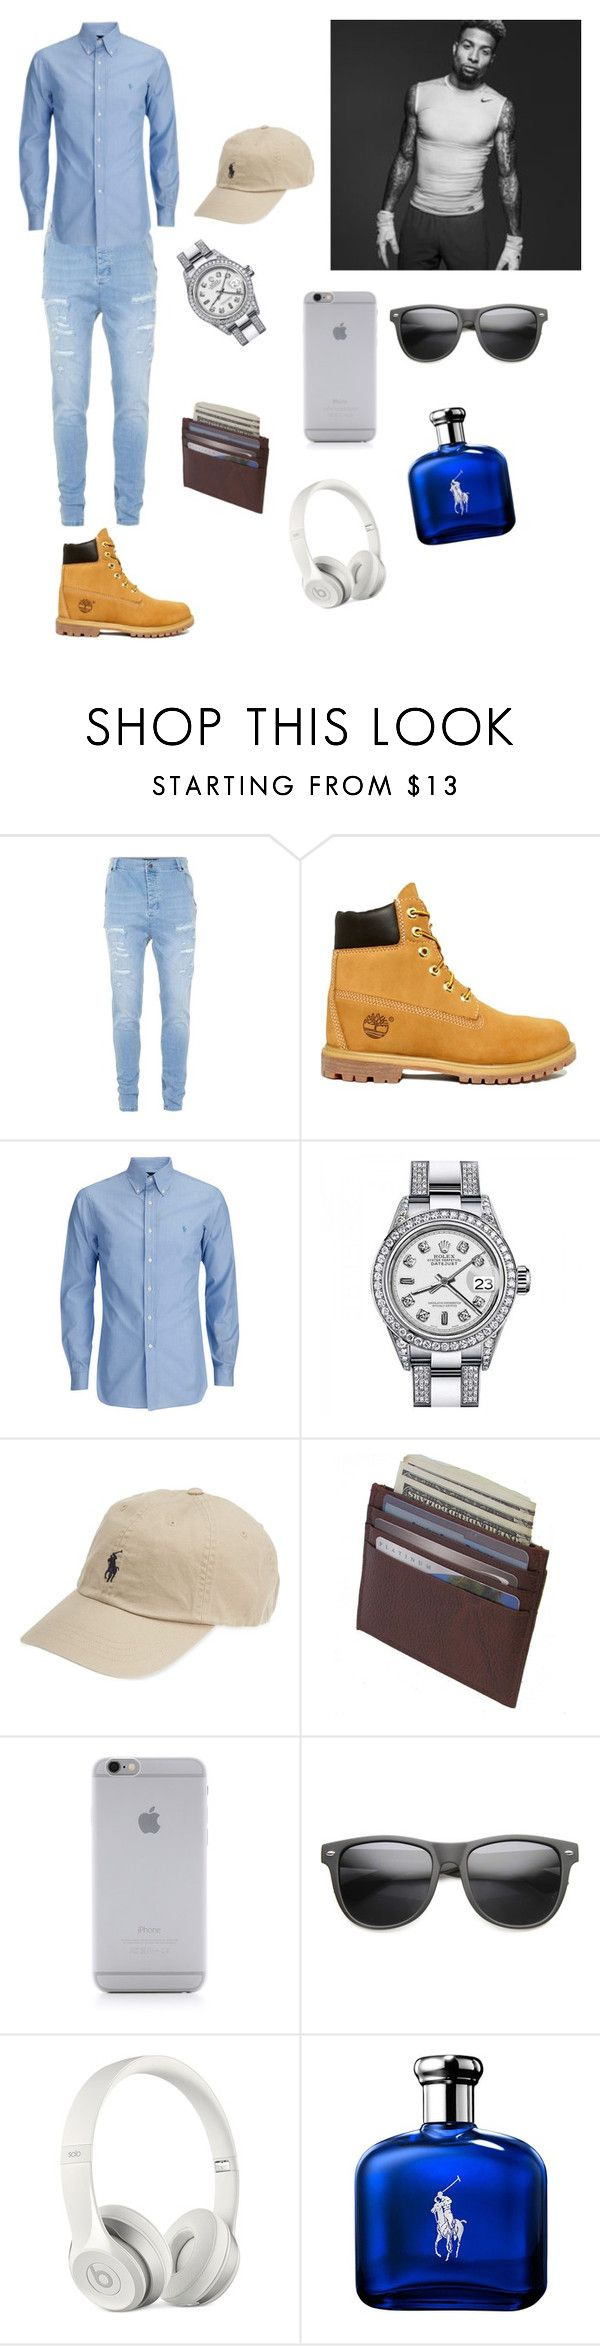 """"""""""" by tori1678 ❤ liked on Polyvore featuring Topman, Timberland, Rolex, Polo Ralph Lauren, Native Union, ZeroUV, Beats by Dr. Dre, Ralph Lauren, men's fashion and menswear"""